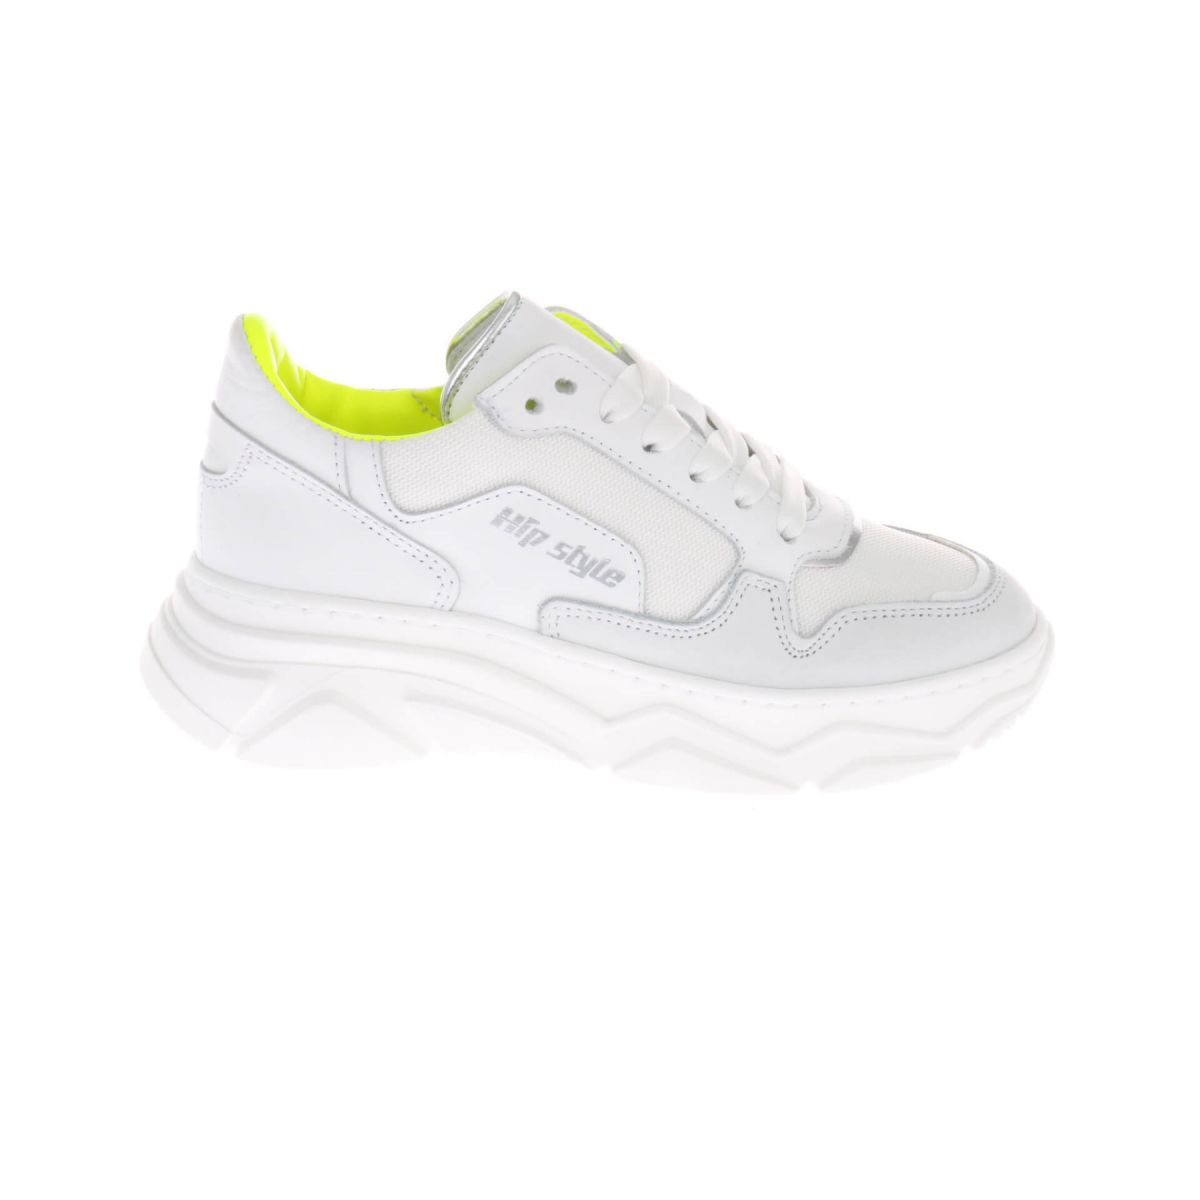 HIP H1266 Sneakers Wit Fluor Geel